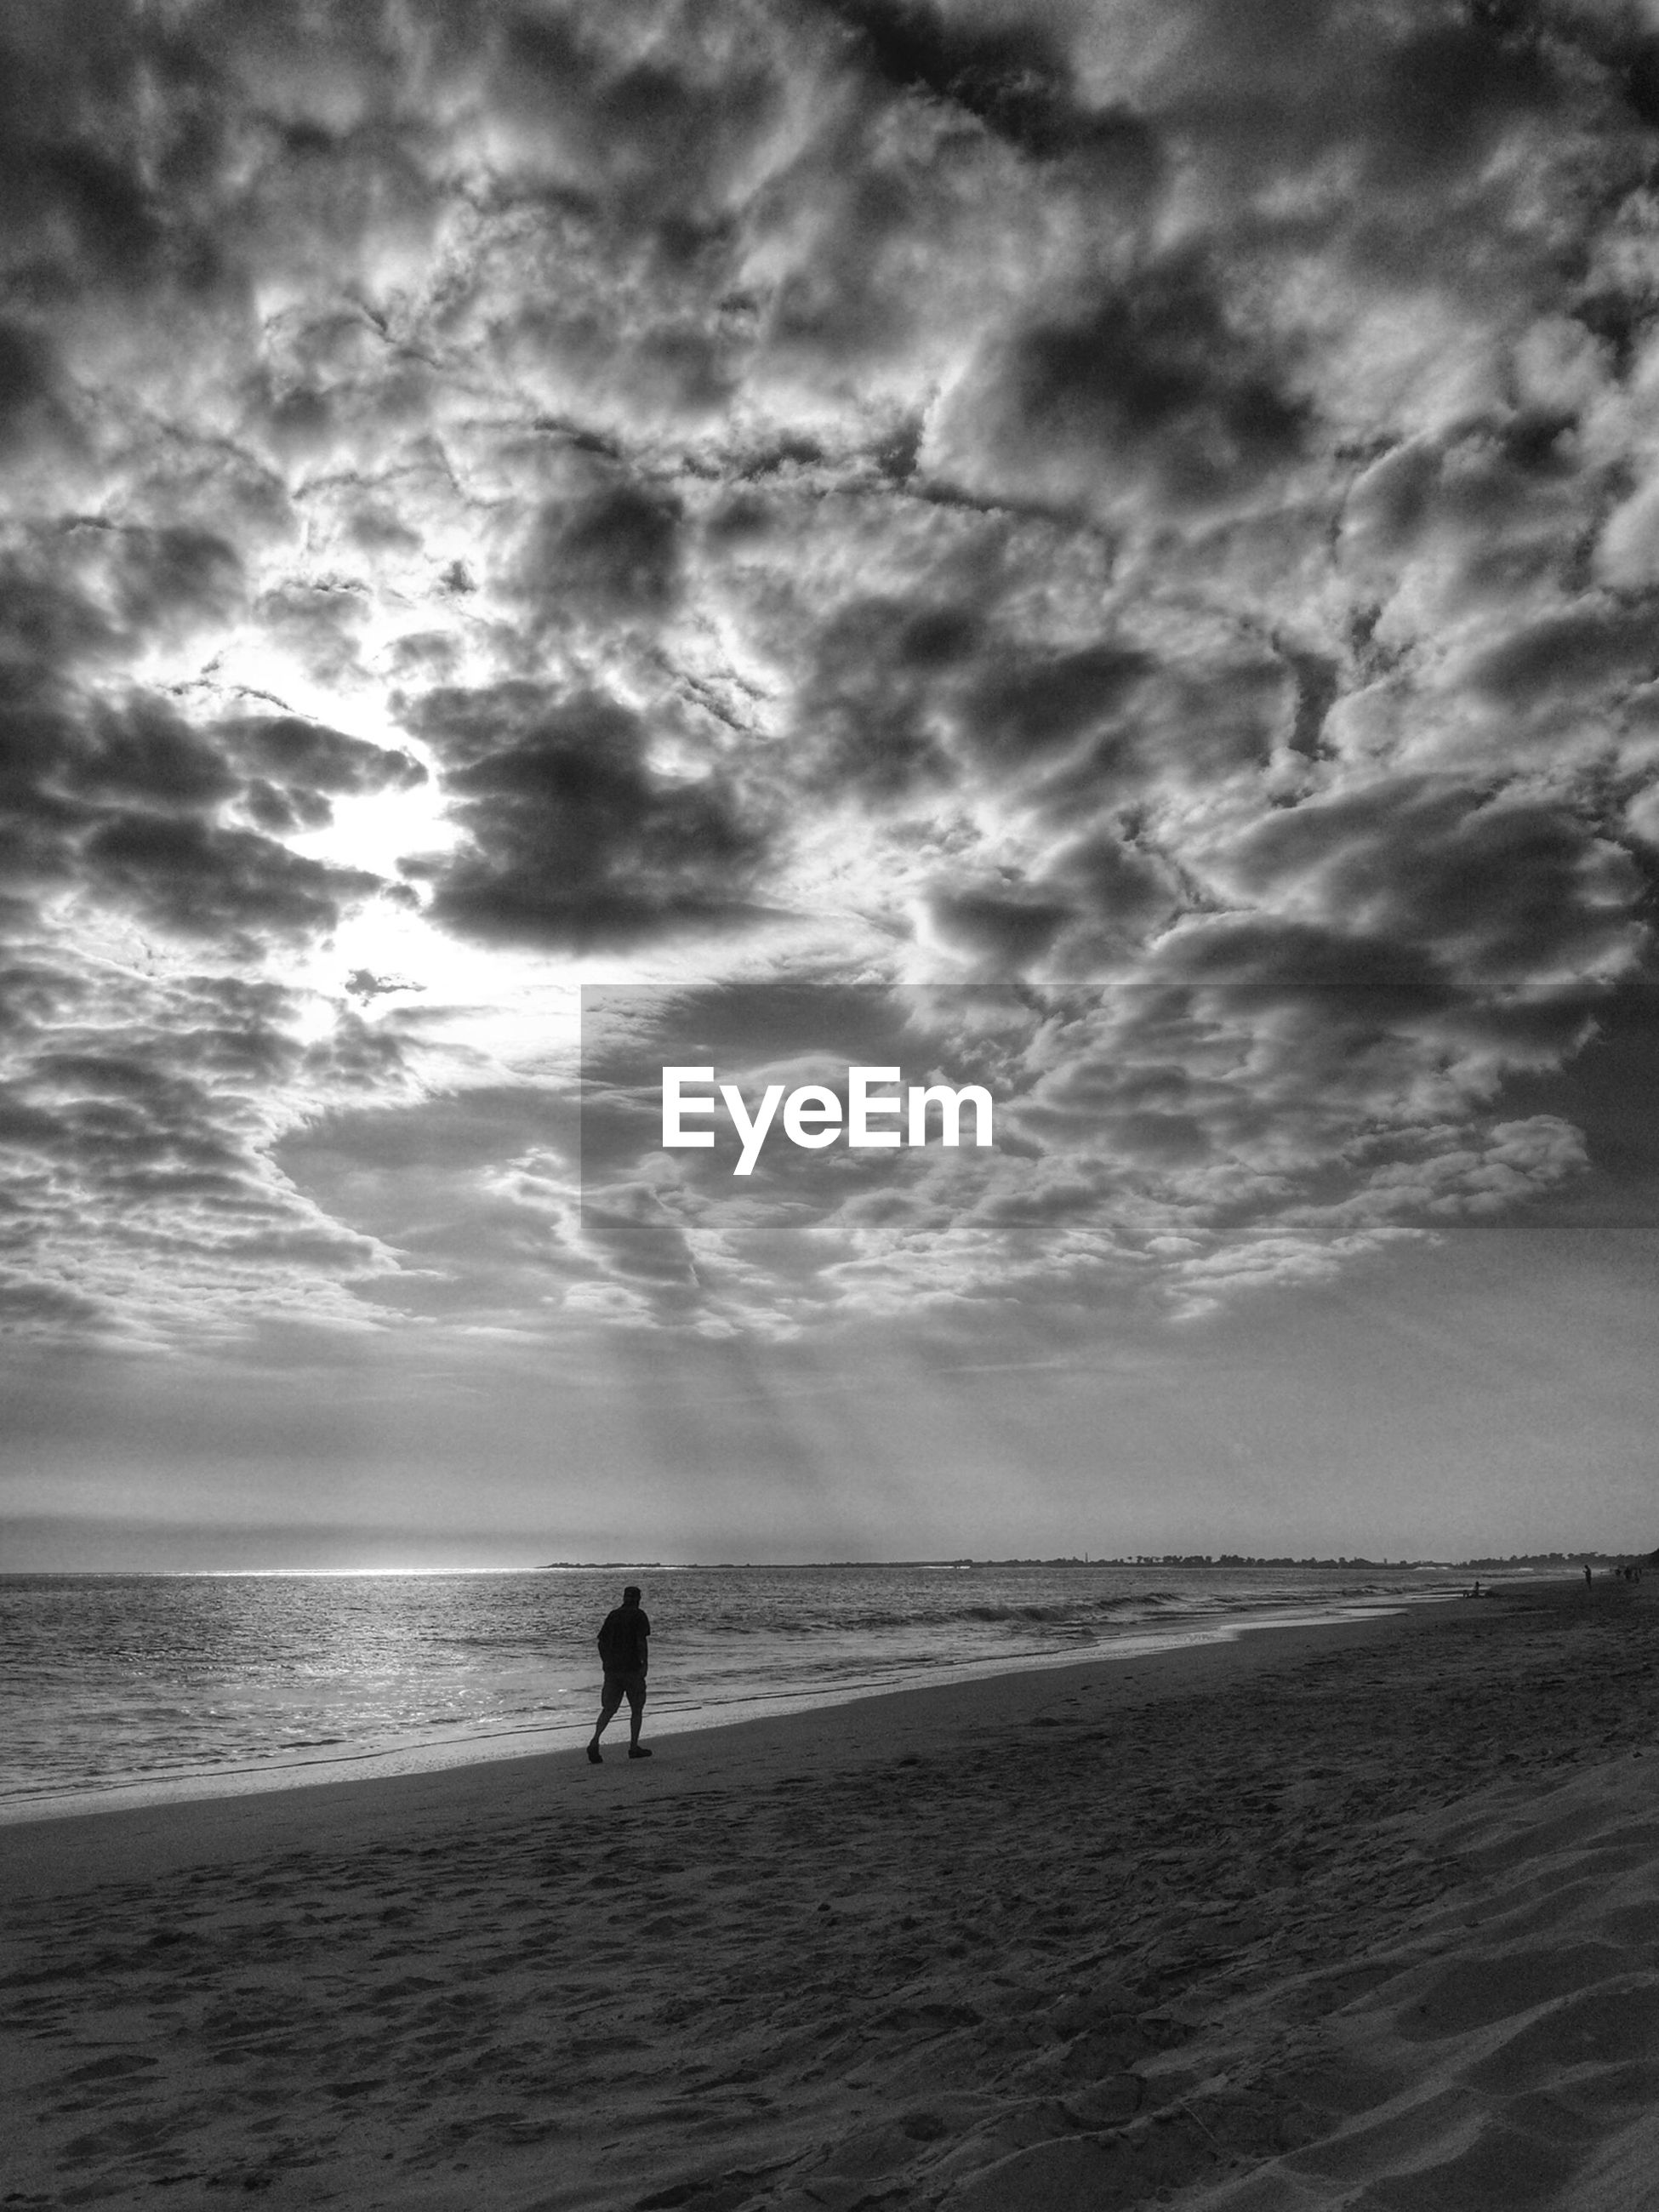 Scenic view of silhouette man walking on beach by sea against cloudy sky